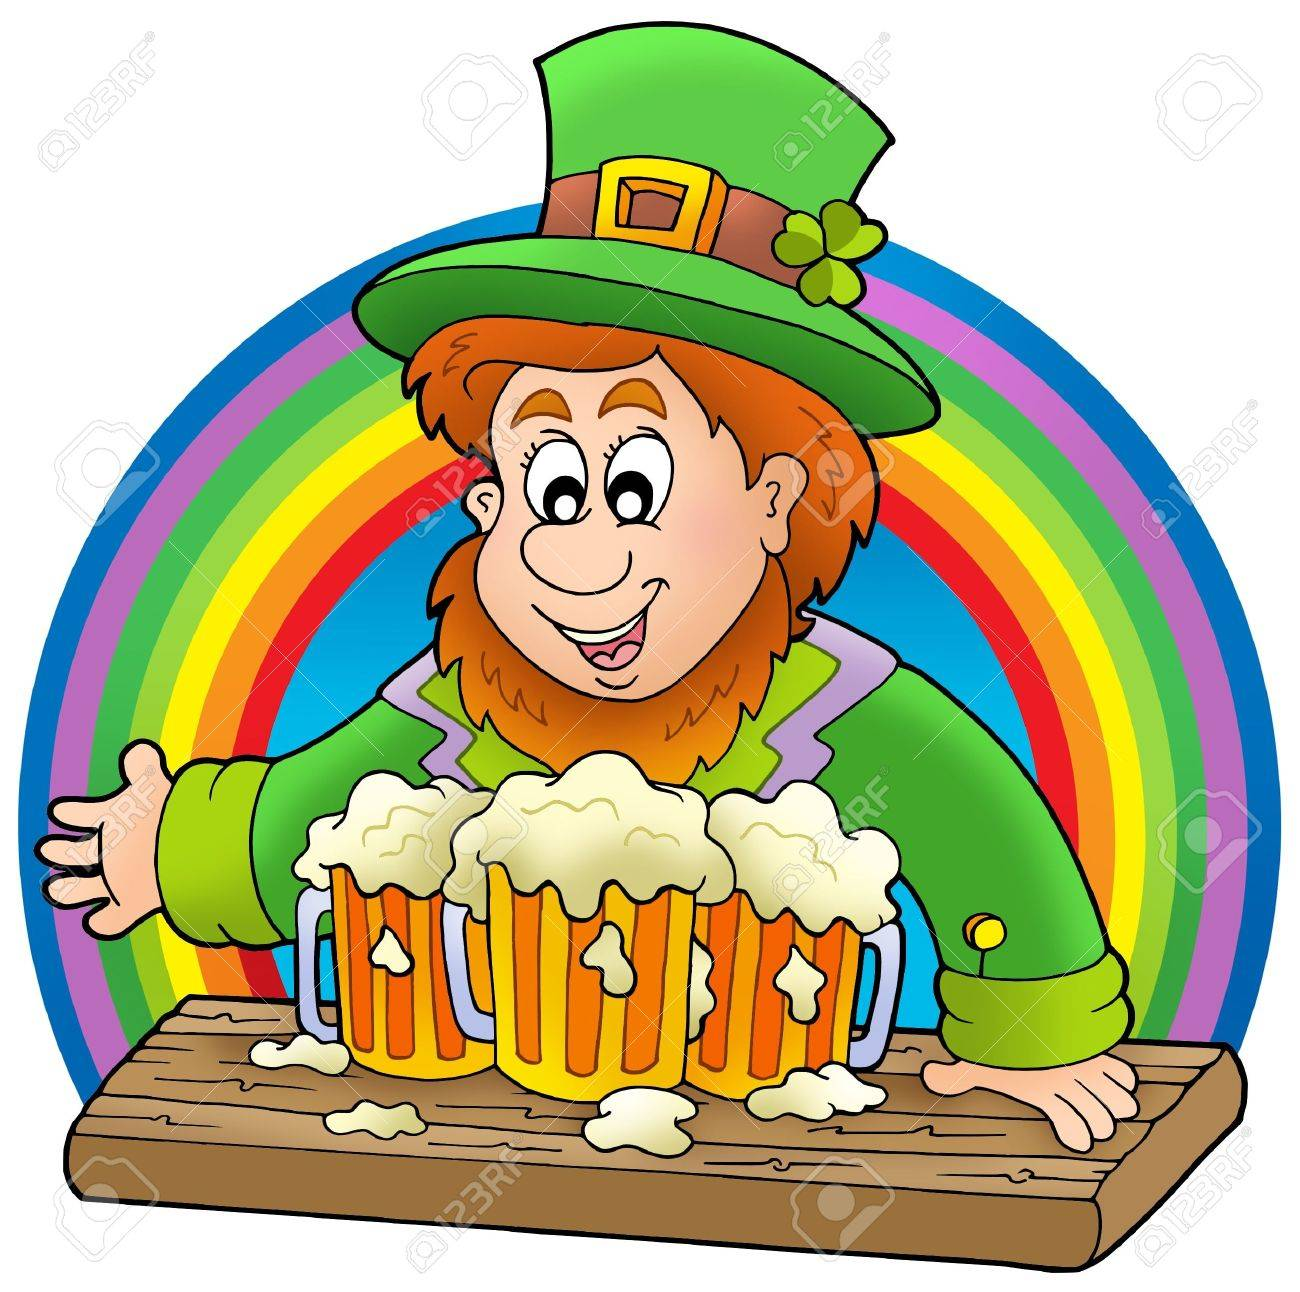 Uncategorized Leprechauns And Rainbows leprechaun with beers and rainbow color illustration stock 6520499